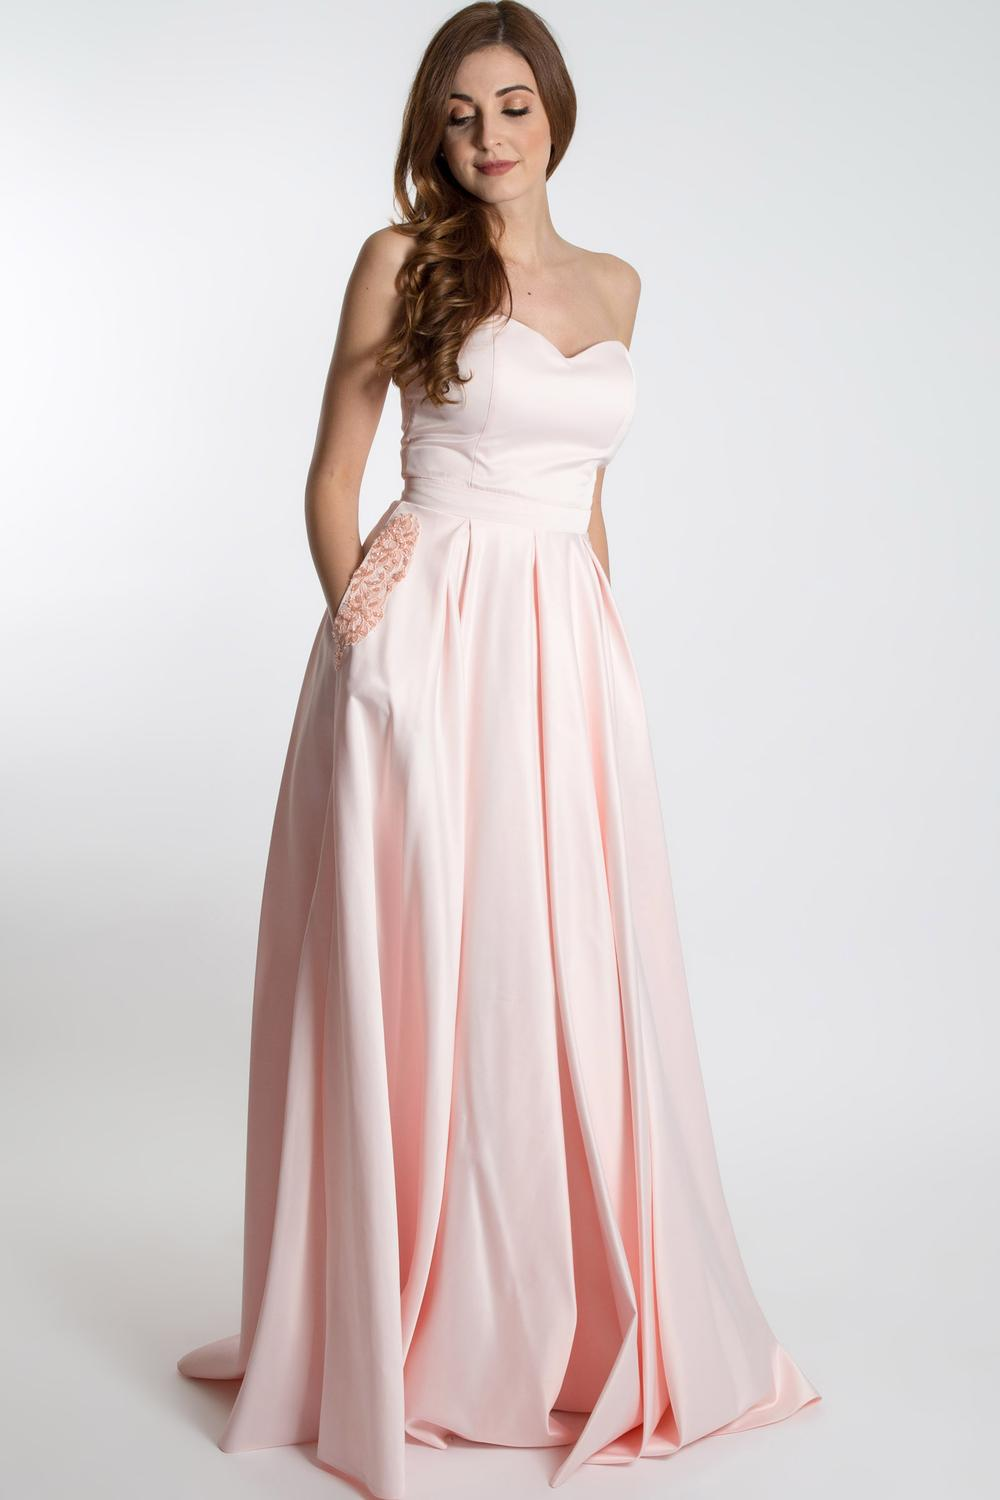 66e923d8b26 Strapless Homecoming Dress With Pockets - Gomes Weine AG